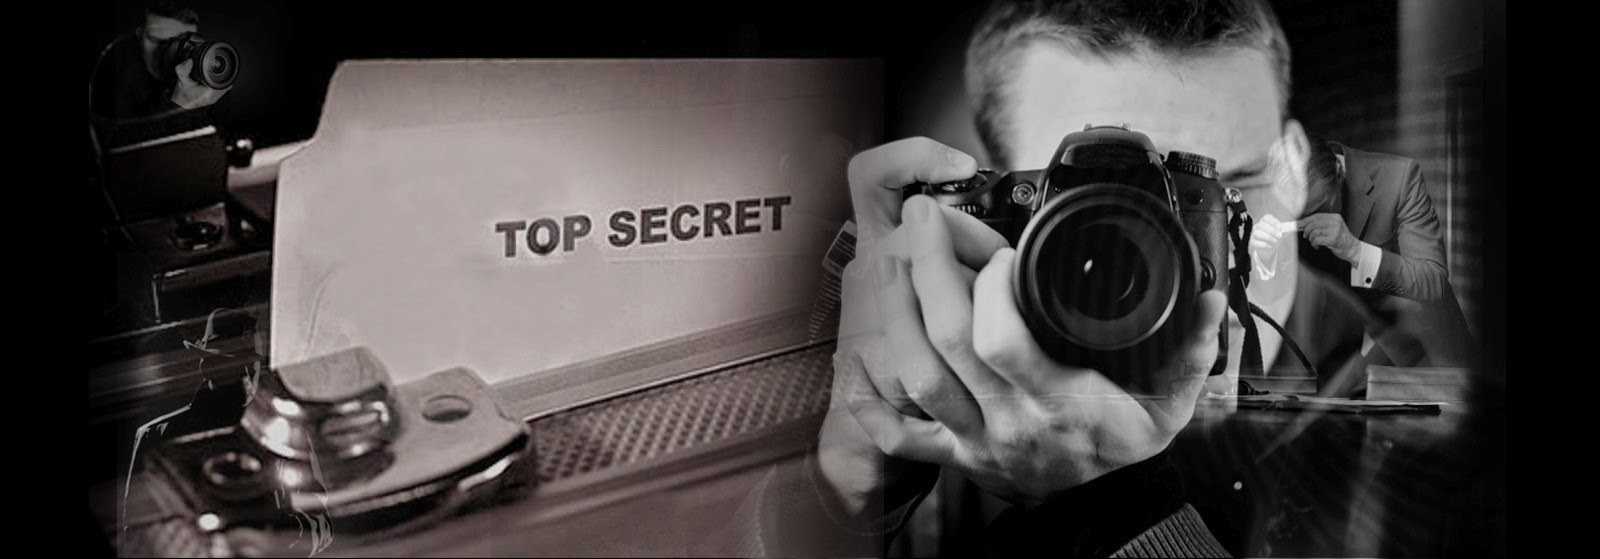 Los Angeles Private Investigators